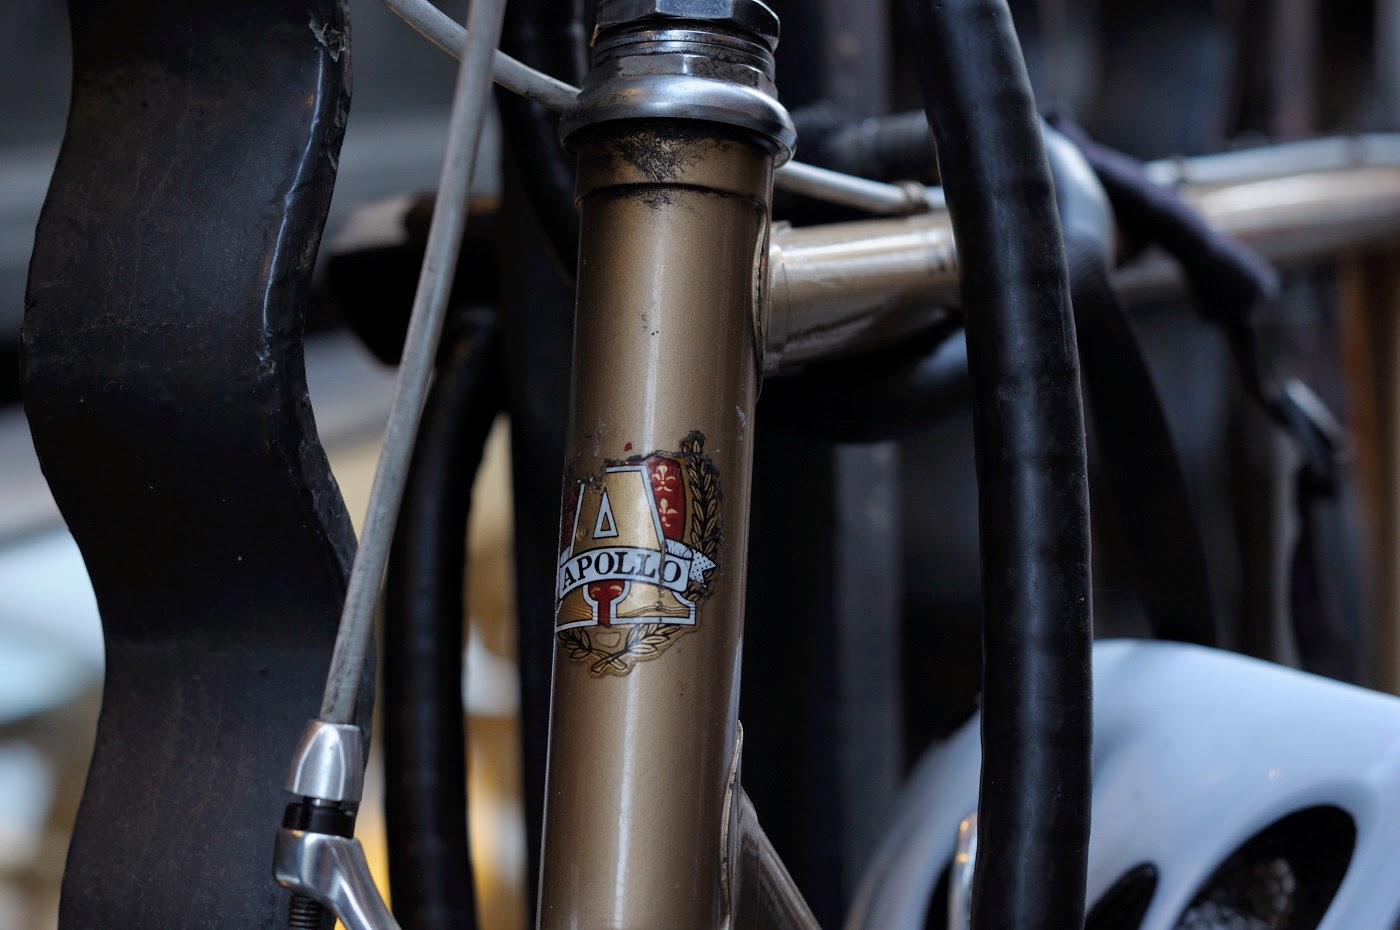 Bespoke, vintage, custom, Tim Macauley, The Biketorialist, The Light Monkey Collective, Melbourne, flinders lane, bicycle, road bike, Apollo, bike, setup, shimano, 600, groupset, badge, logo, decal, headtube